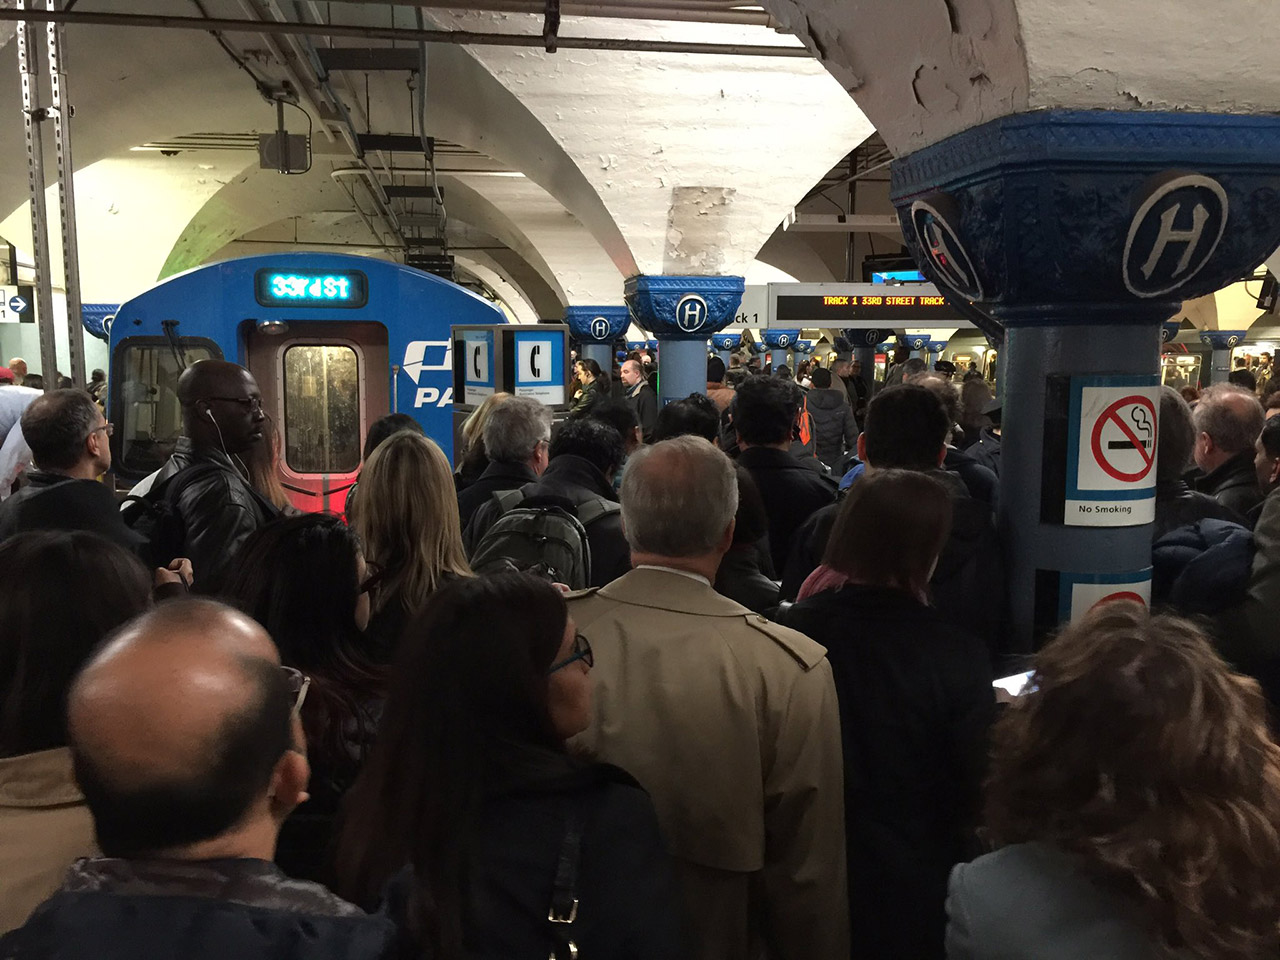 <div class='meta'><div class='origin-logo' data-origin='none'></div><span class='caption-text' data-credit='Photo/@robertjohndavis via Twitter'>This photo shows the crowds waiting for the PATH train in Hoboken following a derailment at New York Penn Station on Monday, April 3, 2017.</span></div>